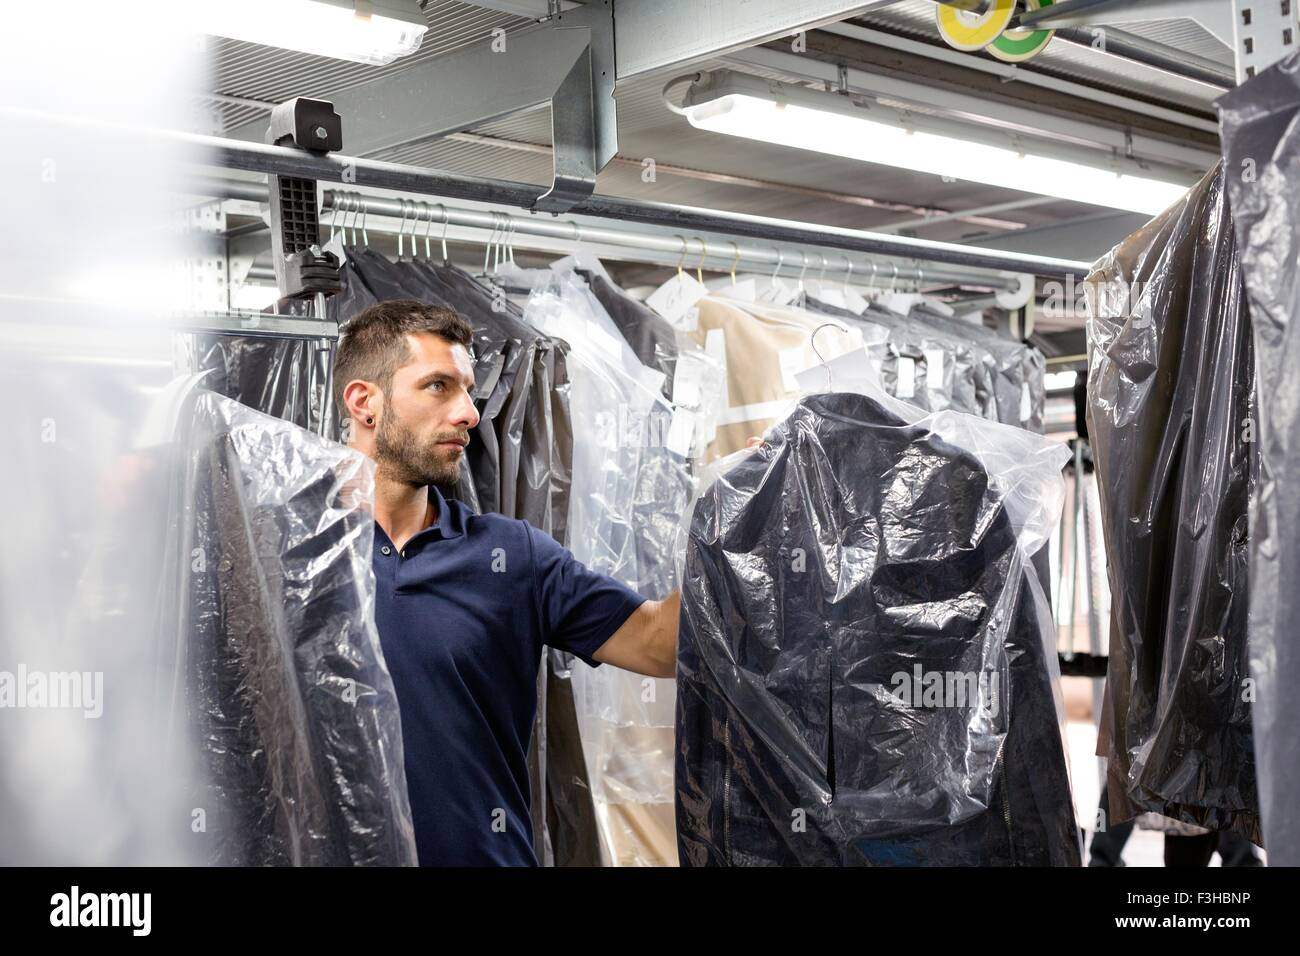 Male warehouse worker doing garment stock take in distribution warehouse - Stock Image